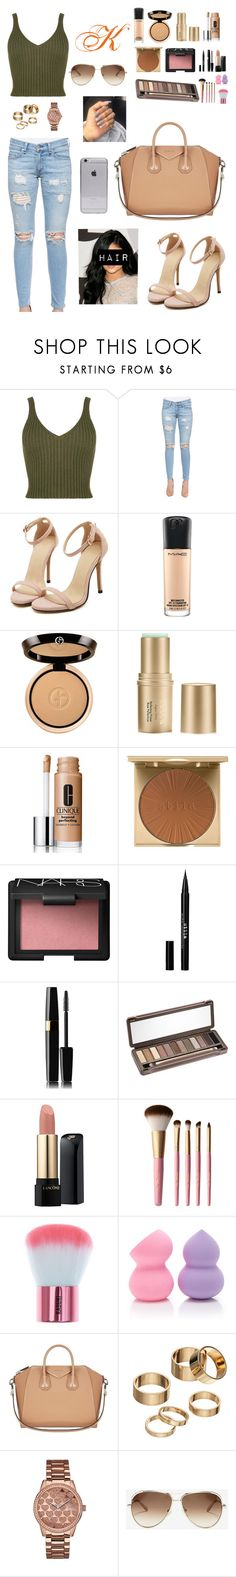 """""""Kylie Jenner Inspired Look"""" by vavavoom02 ❤ liked on Polyvore featuring rag & bone/JEAN, MAC Cosmetics, Giorgio Armani, Stila, Clinique, NARS Cosmetics, Urban Decay, Lancôme, Too Faced Cosmetics and Forever 21"""